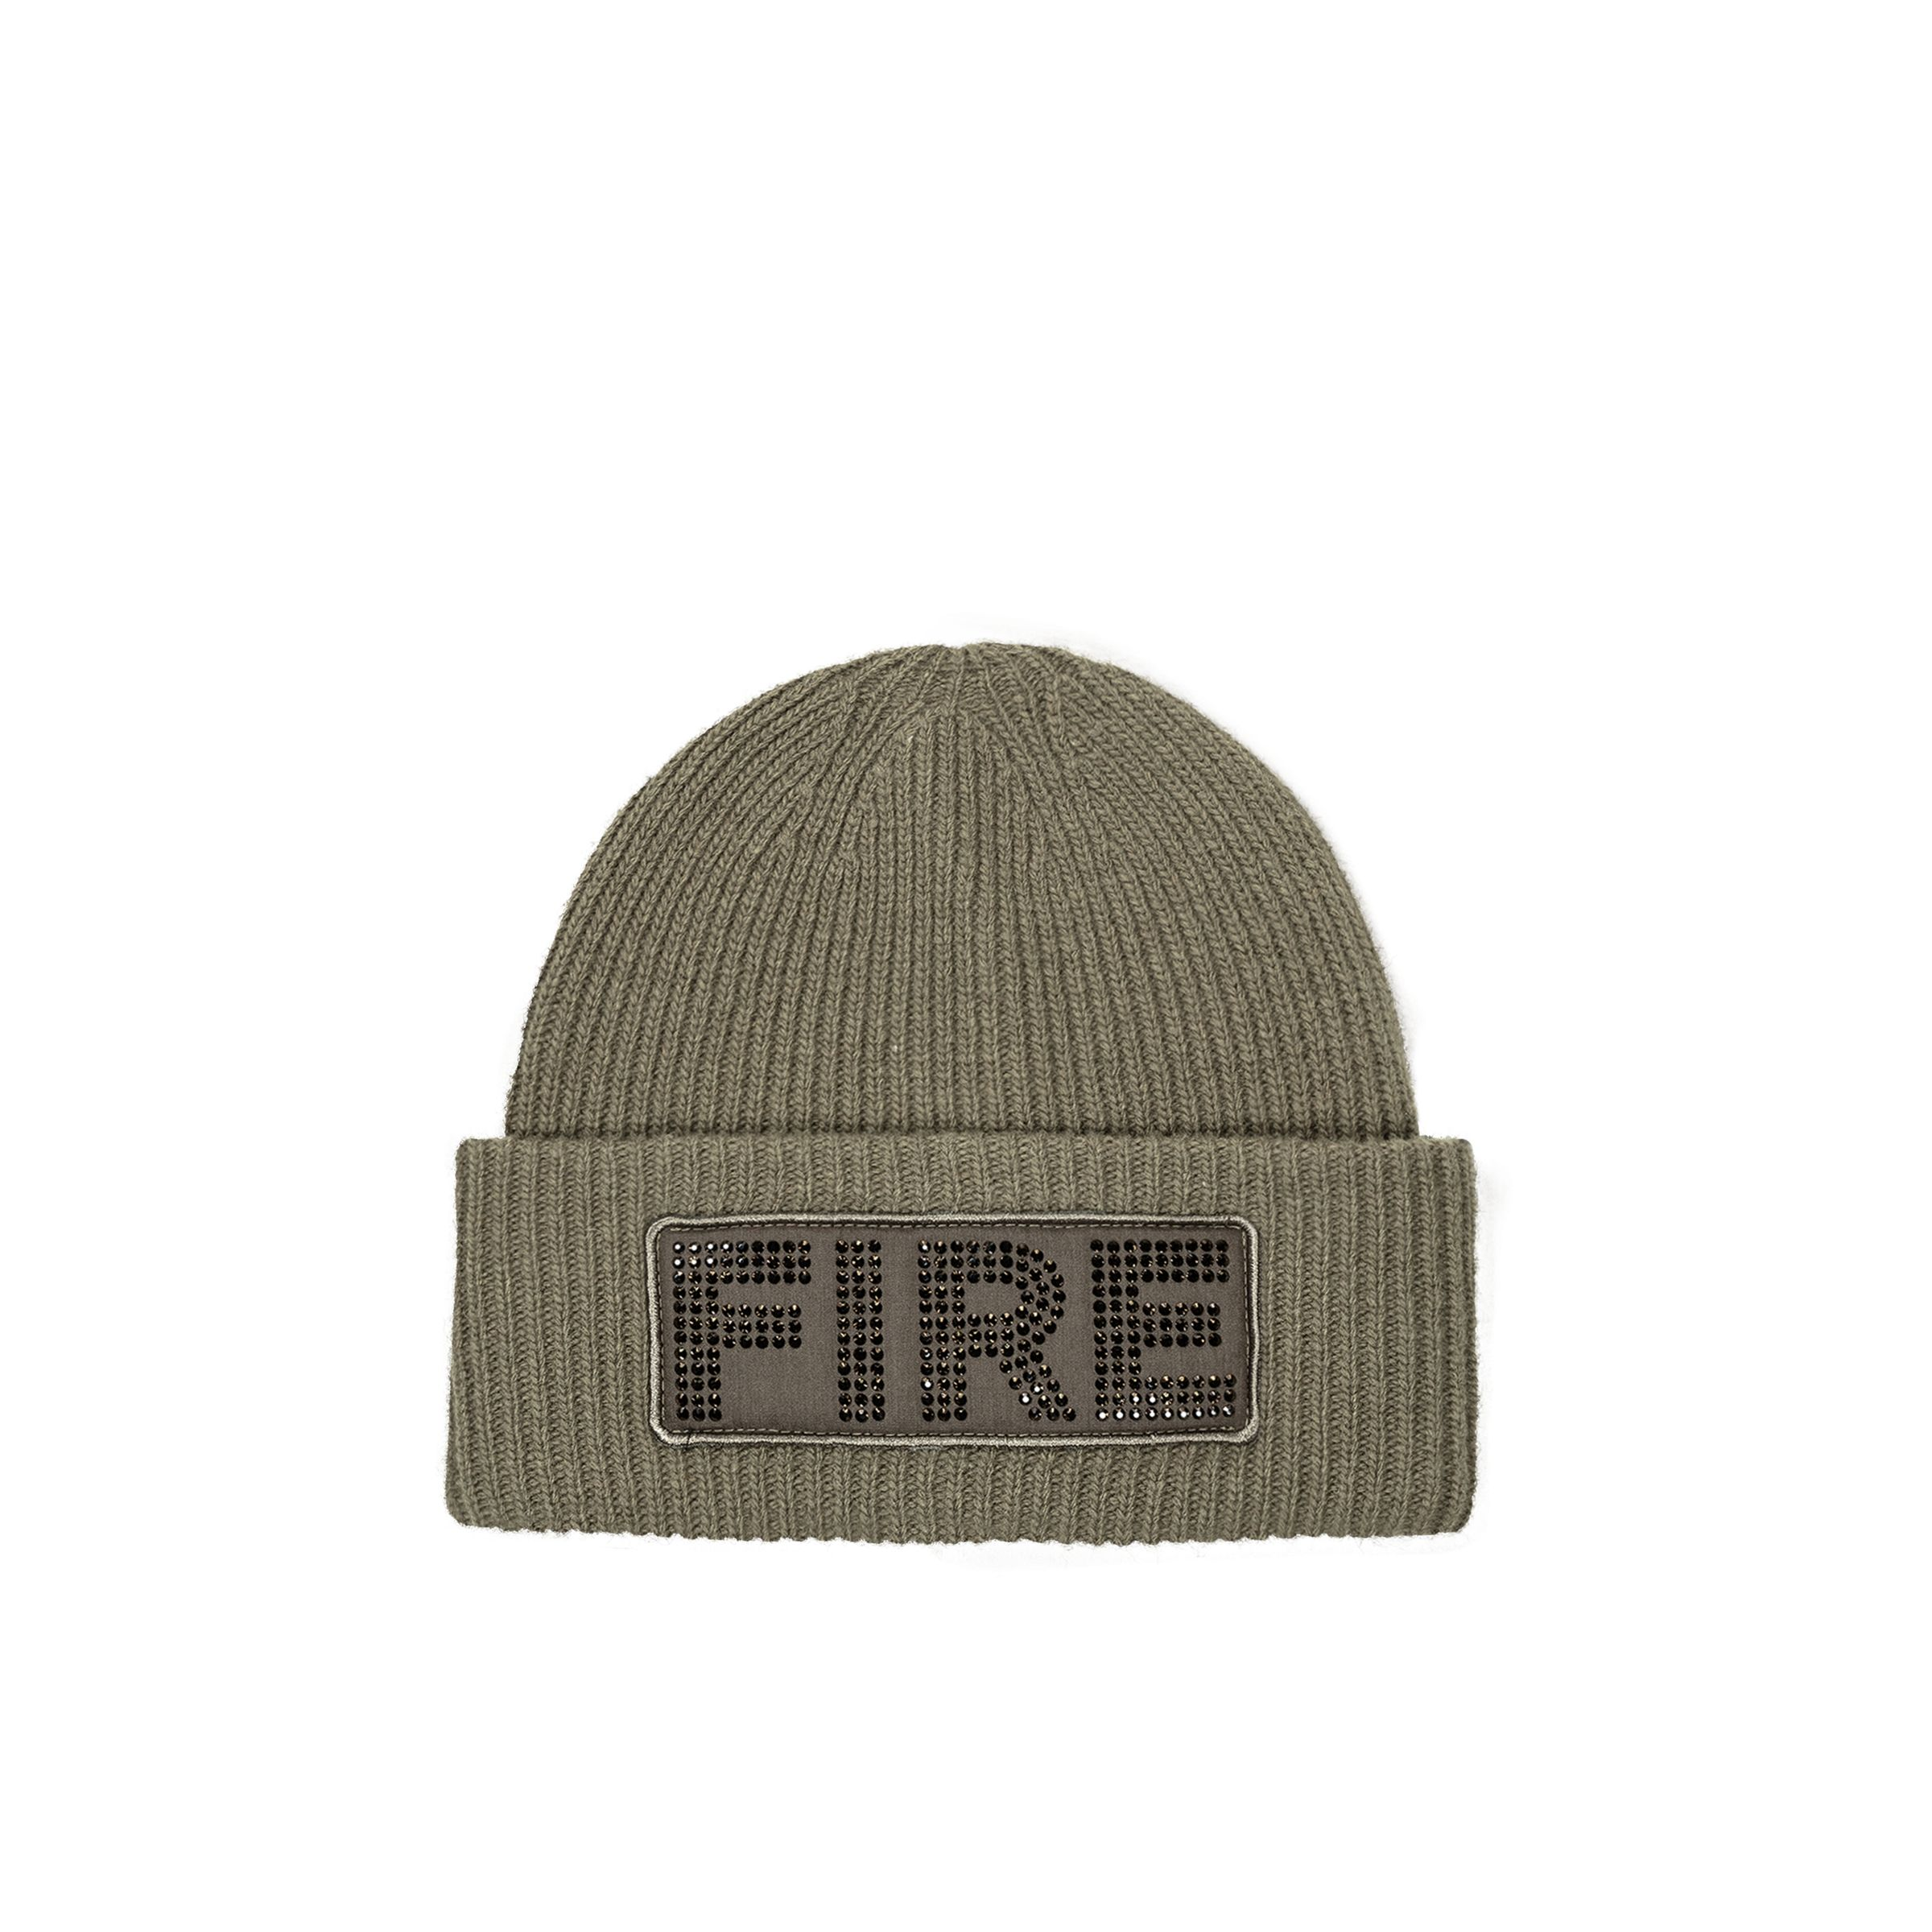 Hats -  bogner fire and ice SIRIN Knitted Hat